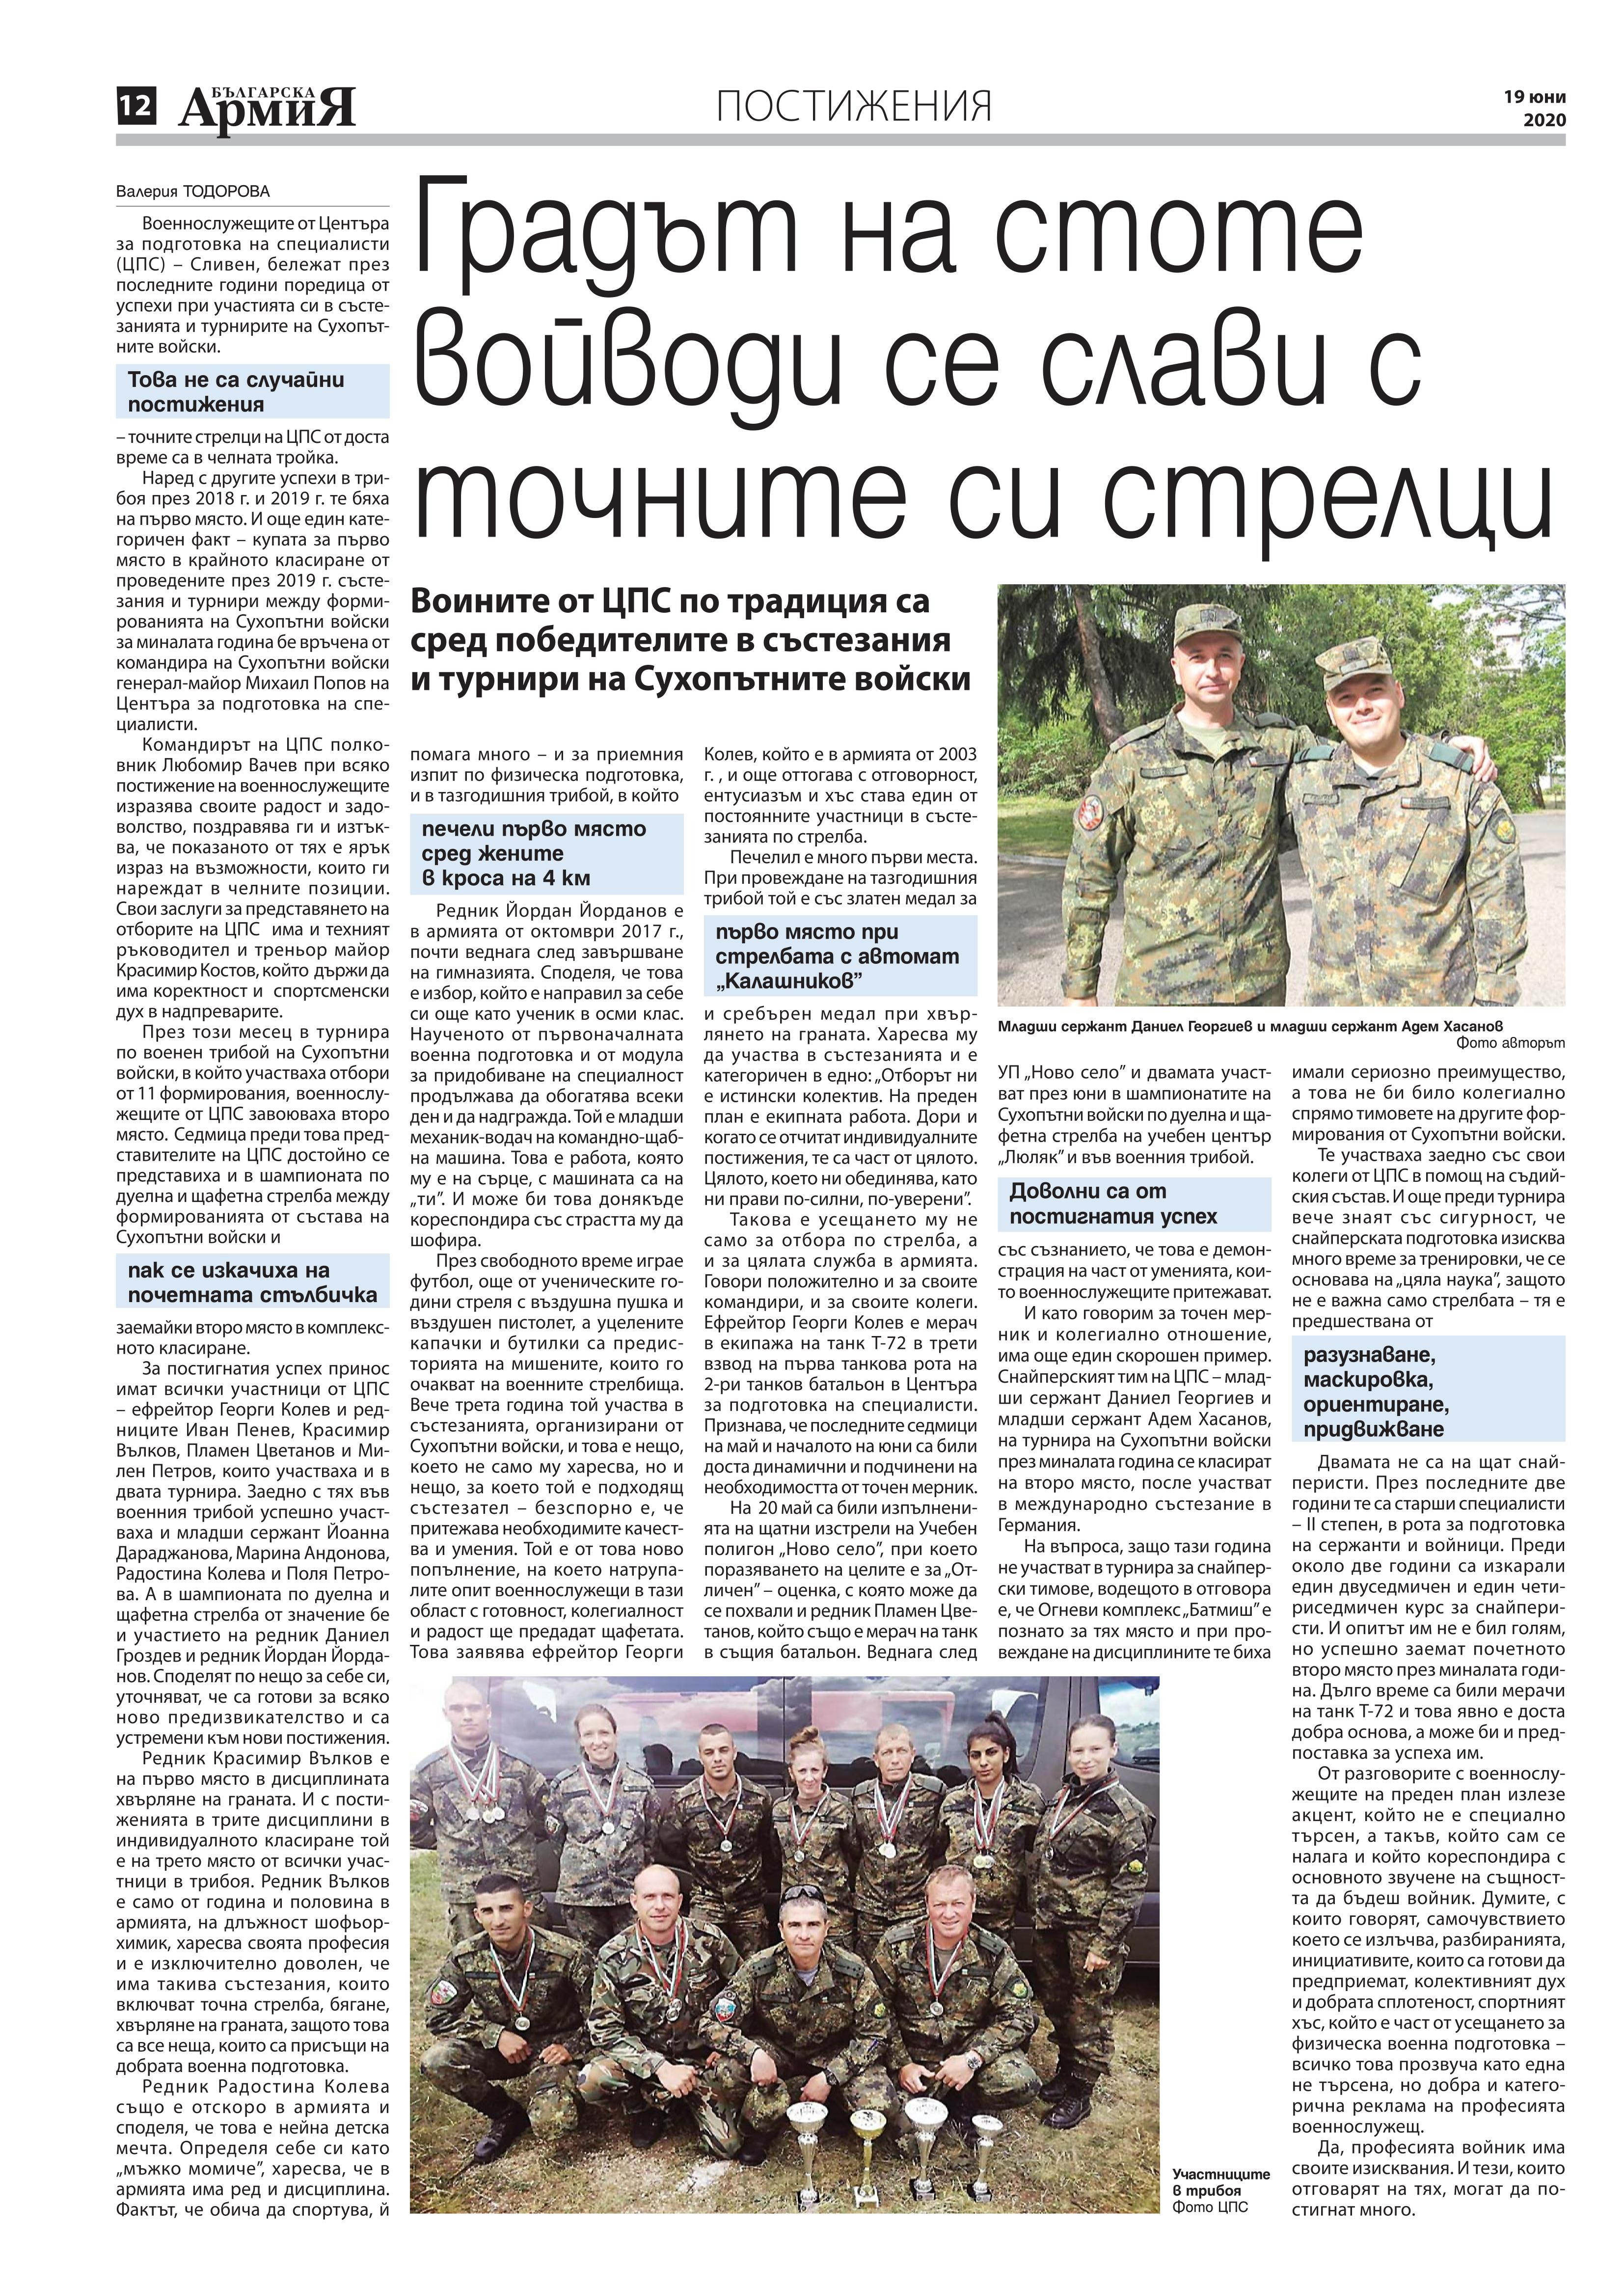 https://armymedia.bg/wp-content/uploads/2015/06/12.page1_-143.jpg